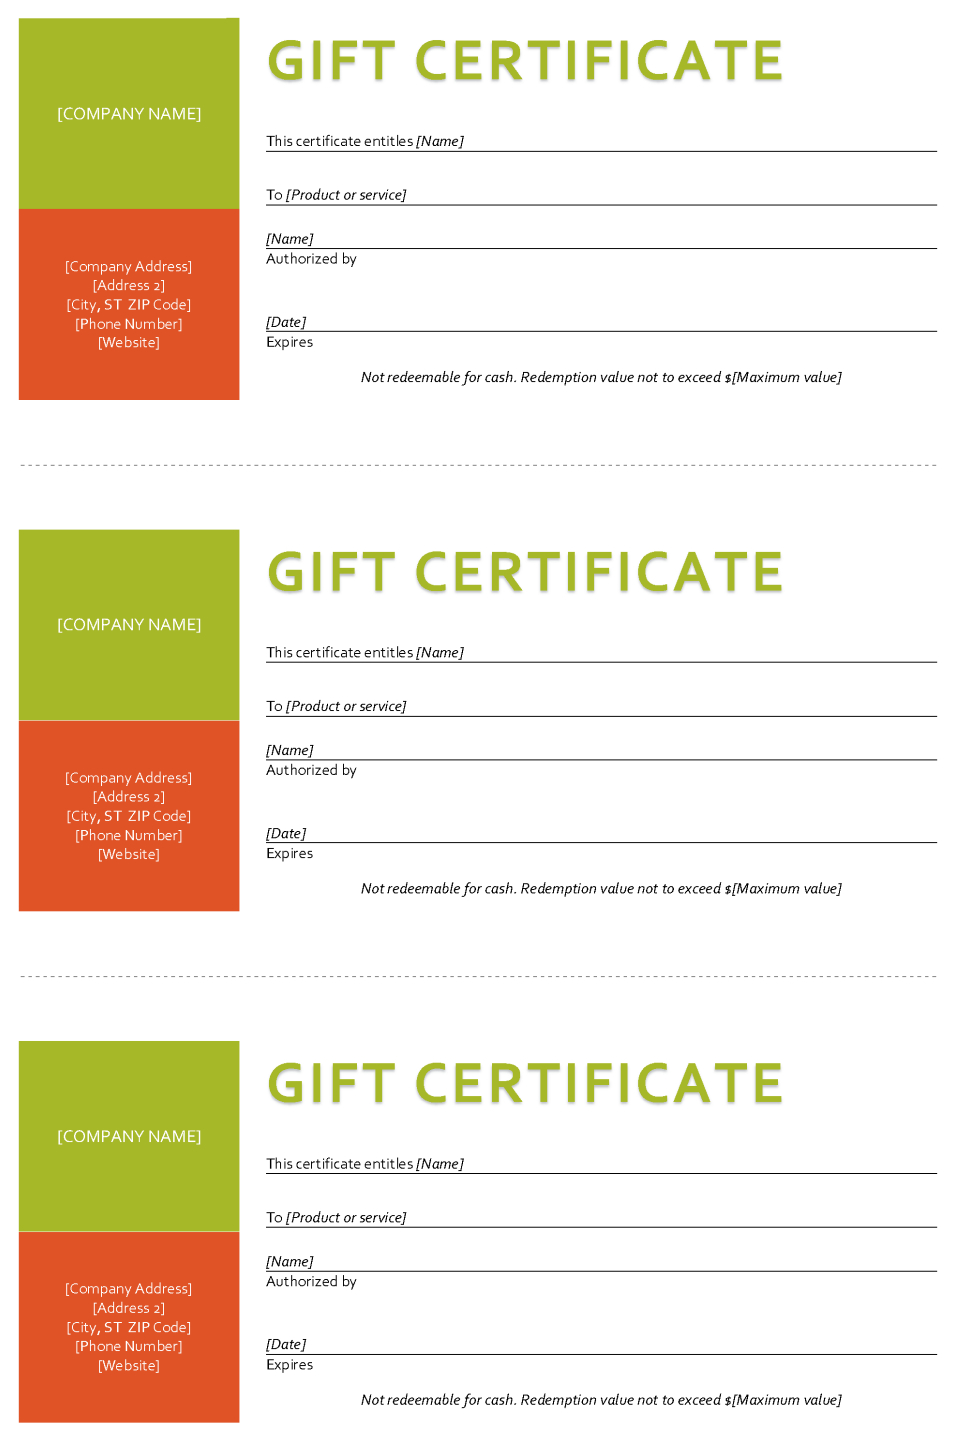 Gift Certificate Template  Sample Gift Certificate In Company Gift Certificate Template